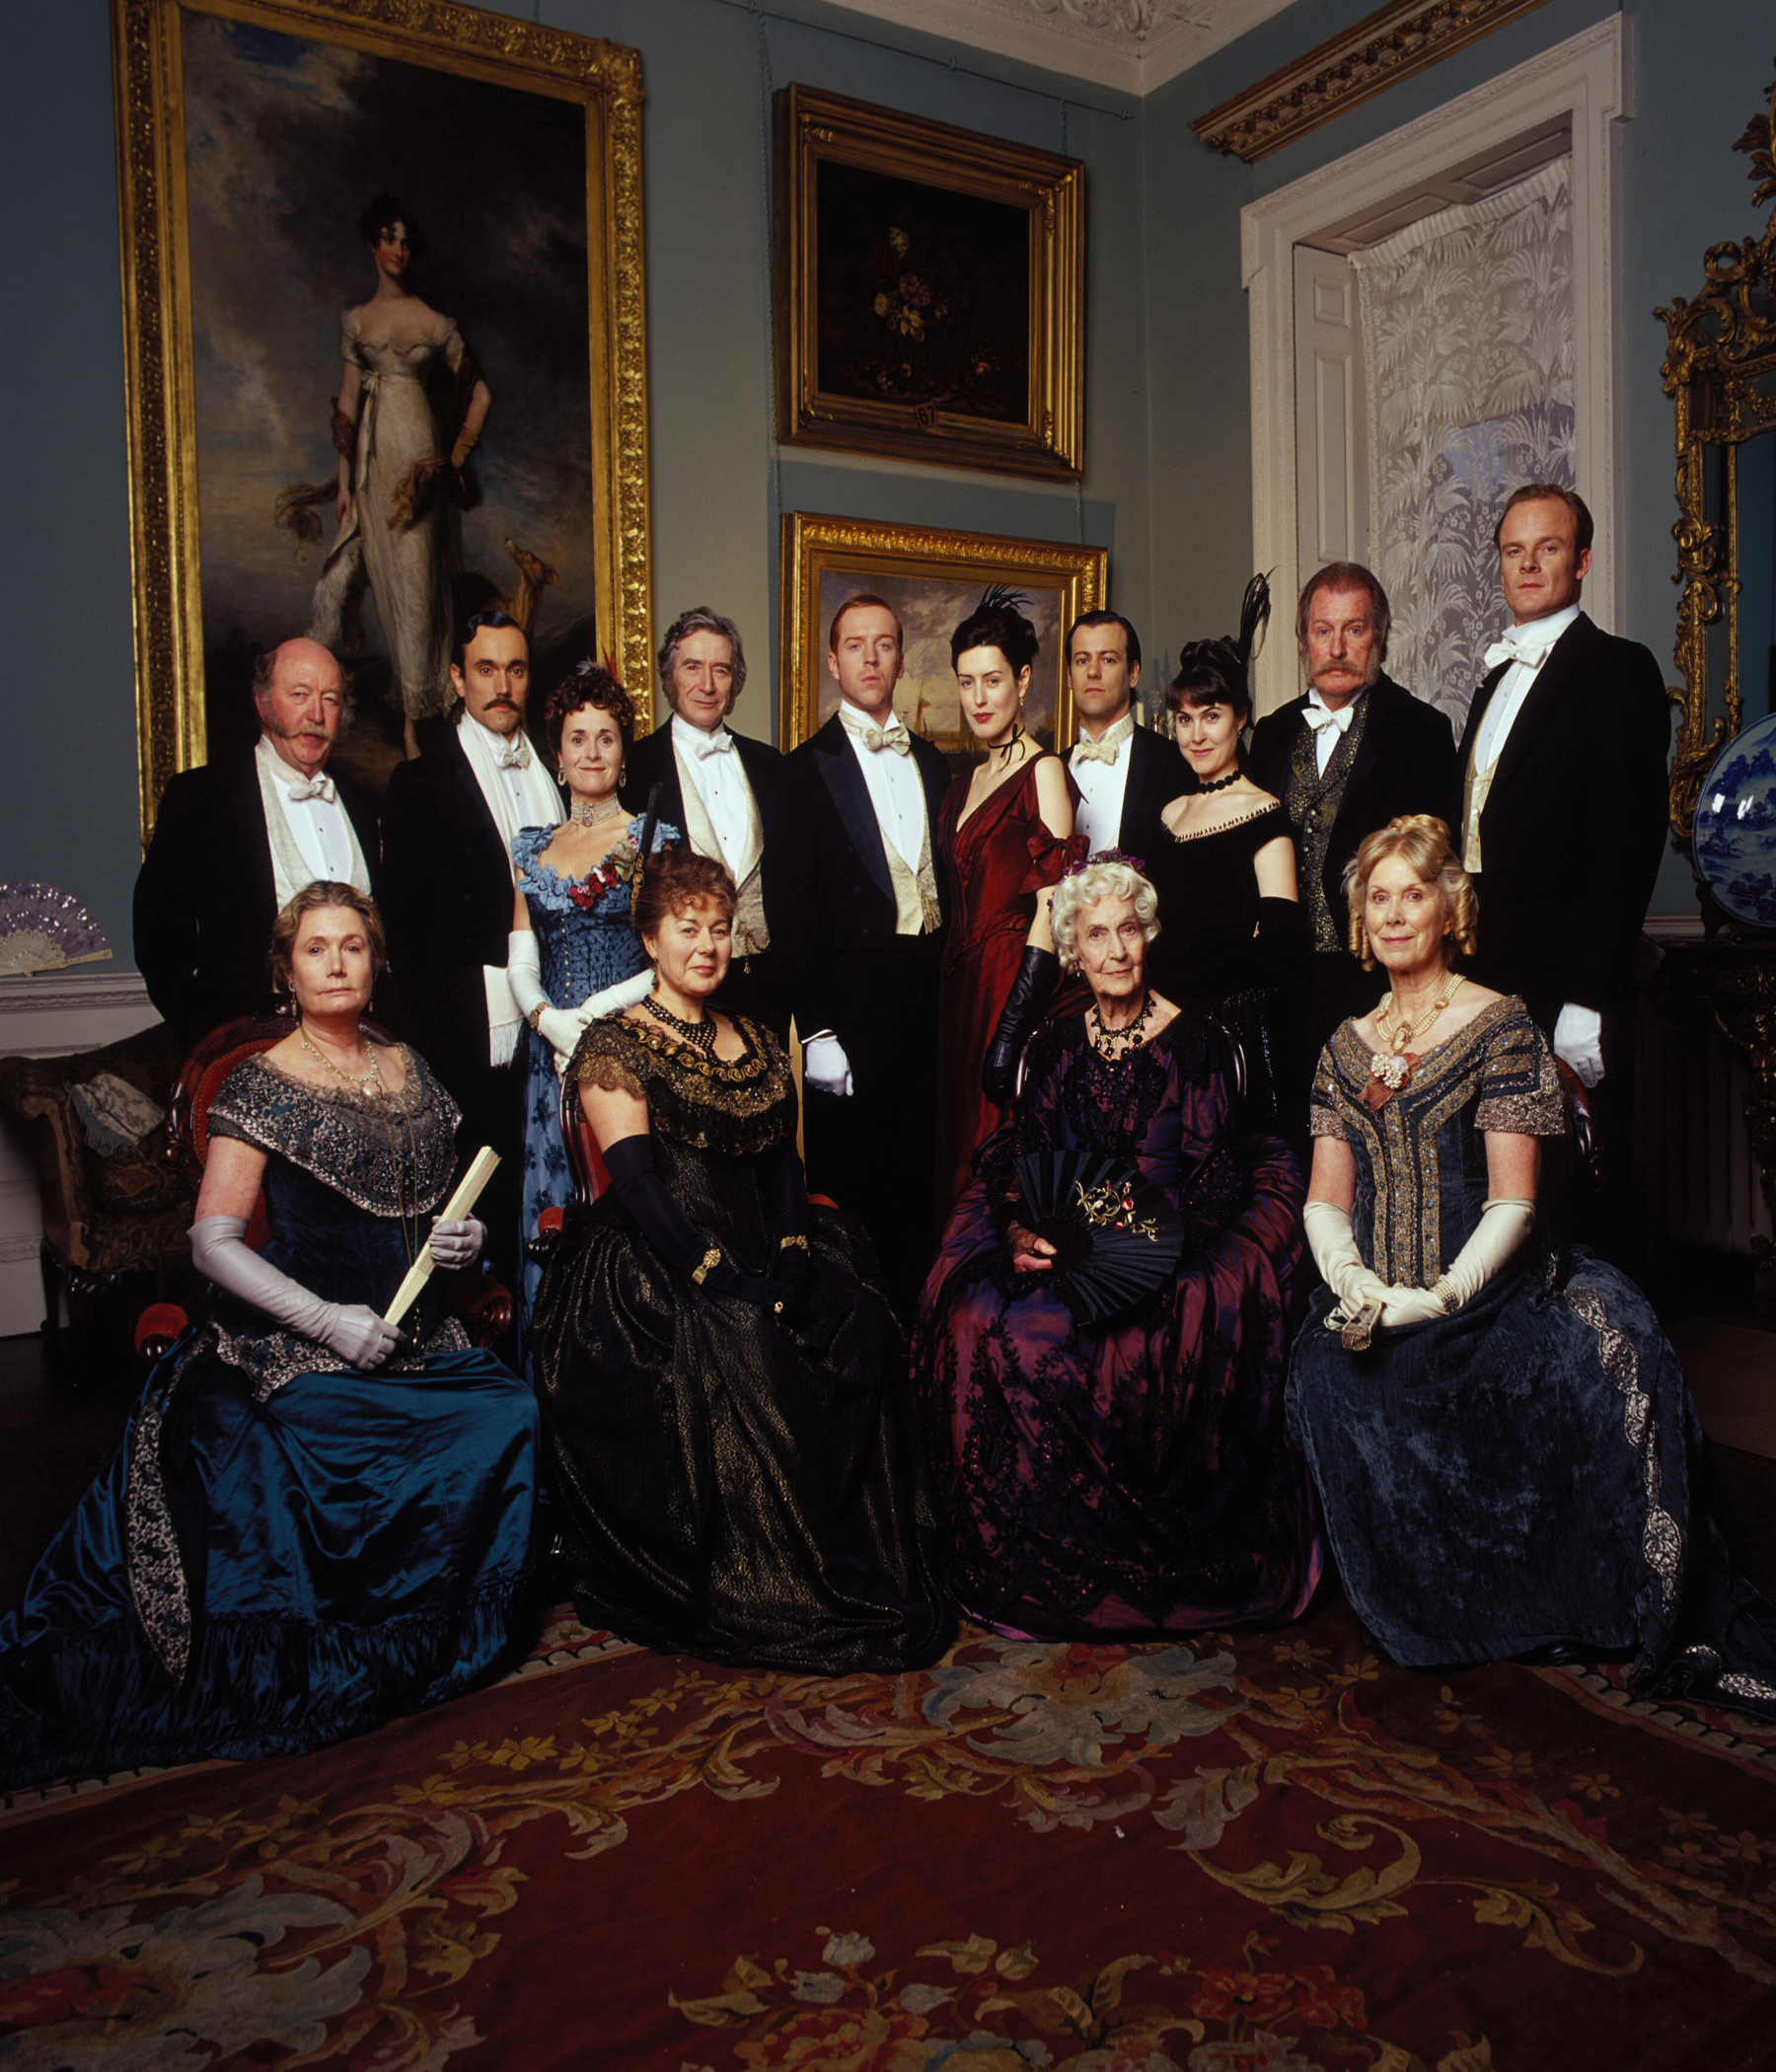 THE FORSYTE FAMILY - (back row L-R) ROBERT LANG, Swithin; BEN MILES, Dartie; AMANDA ROOT, Winifred; DAMIAN LEWIS, Soames;  GINA McKEE, Irene; RUPERT GRAVES, Young Jolyon; GILLIAN KEARNEY, June; CORIN REDGRAVE, Old Jolyon; ALISTAIR PETRIE, George Forsyte. (front row L - R)  ANN BELL, Aunt Hester; BARBARA FLYNN, Aunt Emily;  JUDY CAMPBELL, Aunt Ann; WENDY CRAIG, Aunt Juley;  Photograph taken by Brian Moody.